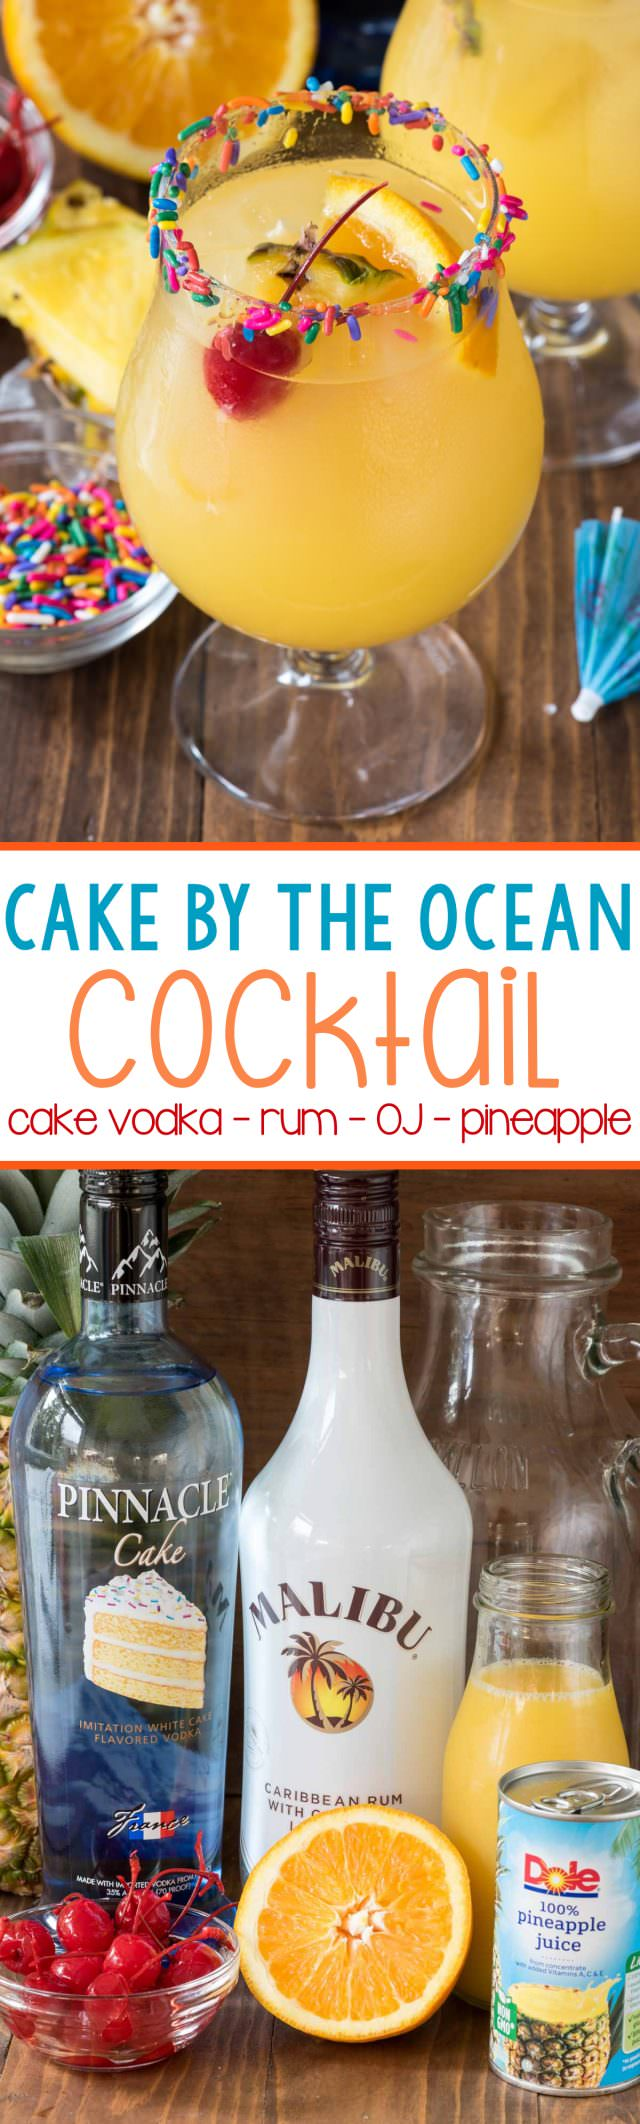 Like eating cake by the ocean? Make this easy cocktail with few simple ingredients like cake vodka, coconut rum, pineapple and orange.